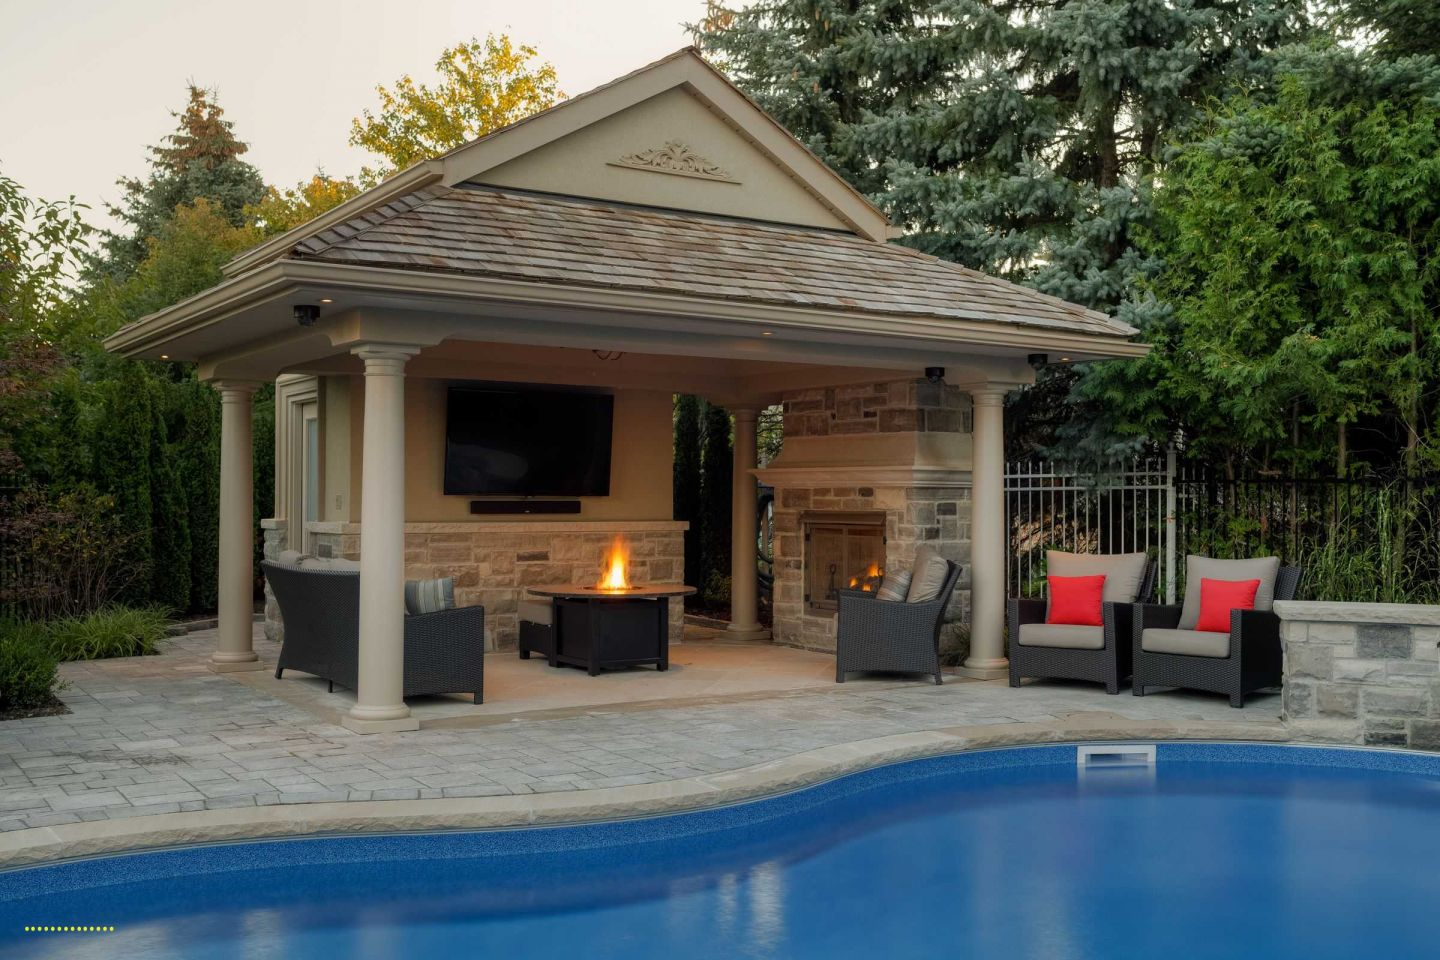 25 Pool House And Cabana Ideas For Relaxing Retreat Rustic Small Simple Modern Diy Outdoor Inexpensive Pool House Designs Pool Gazebo Small Pool Houses